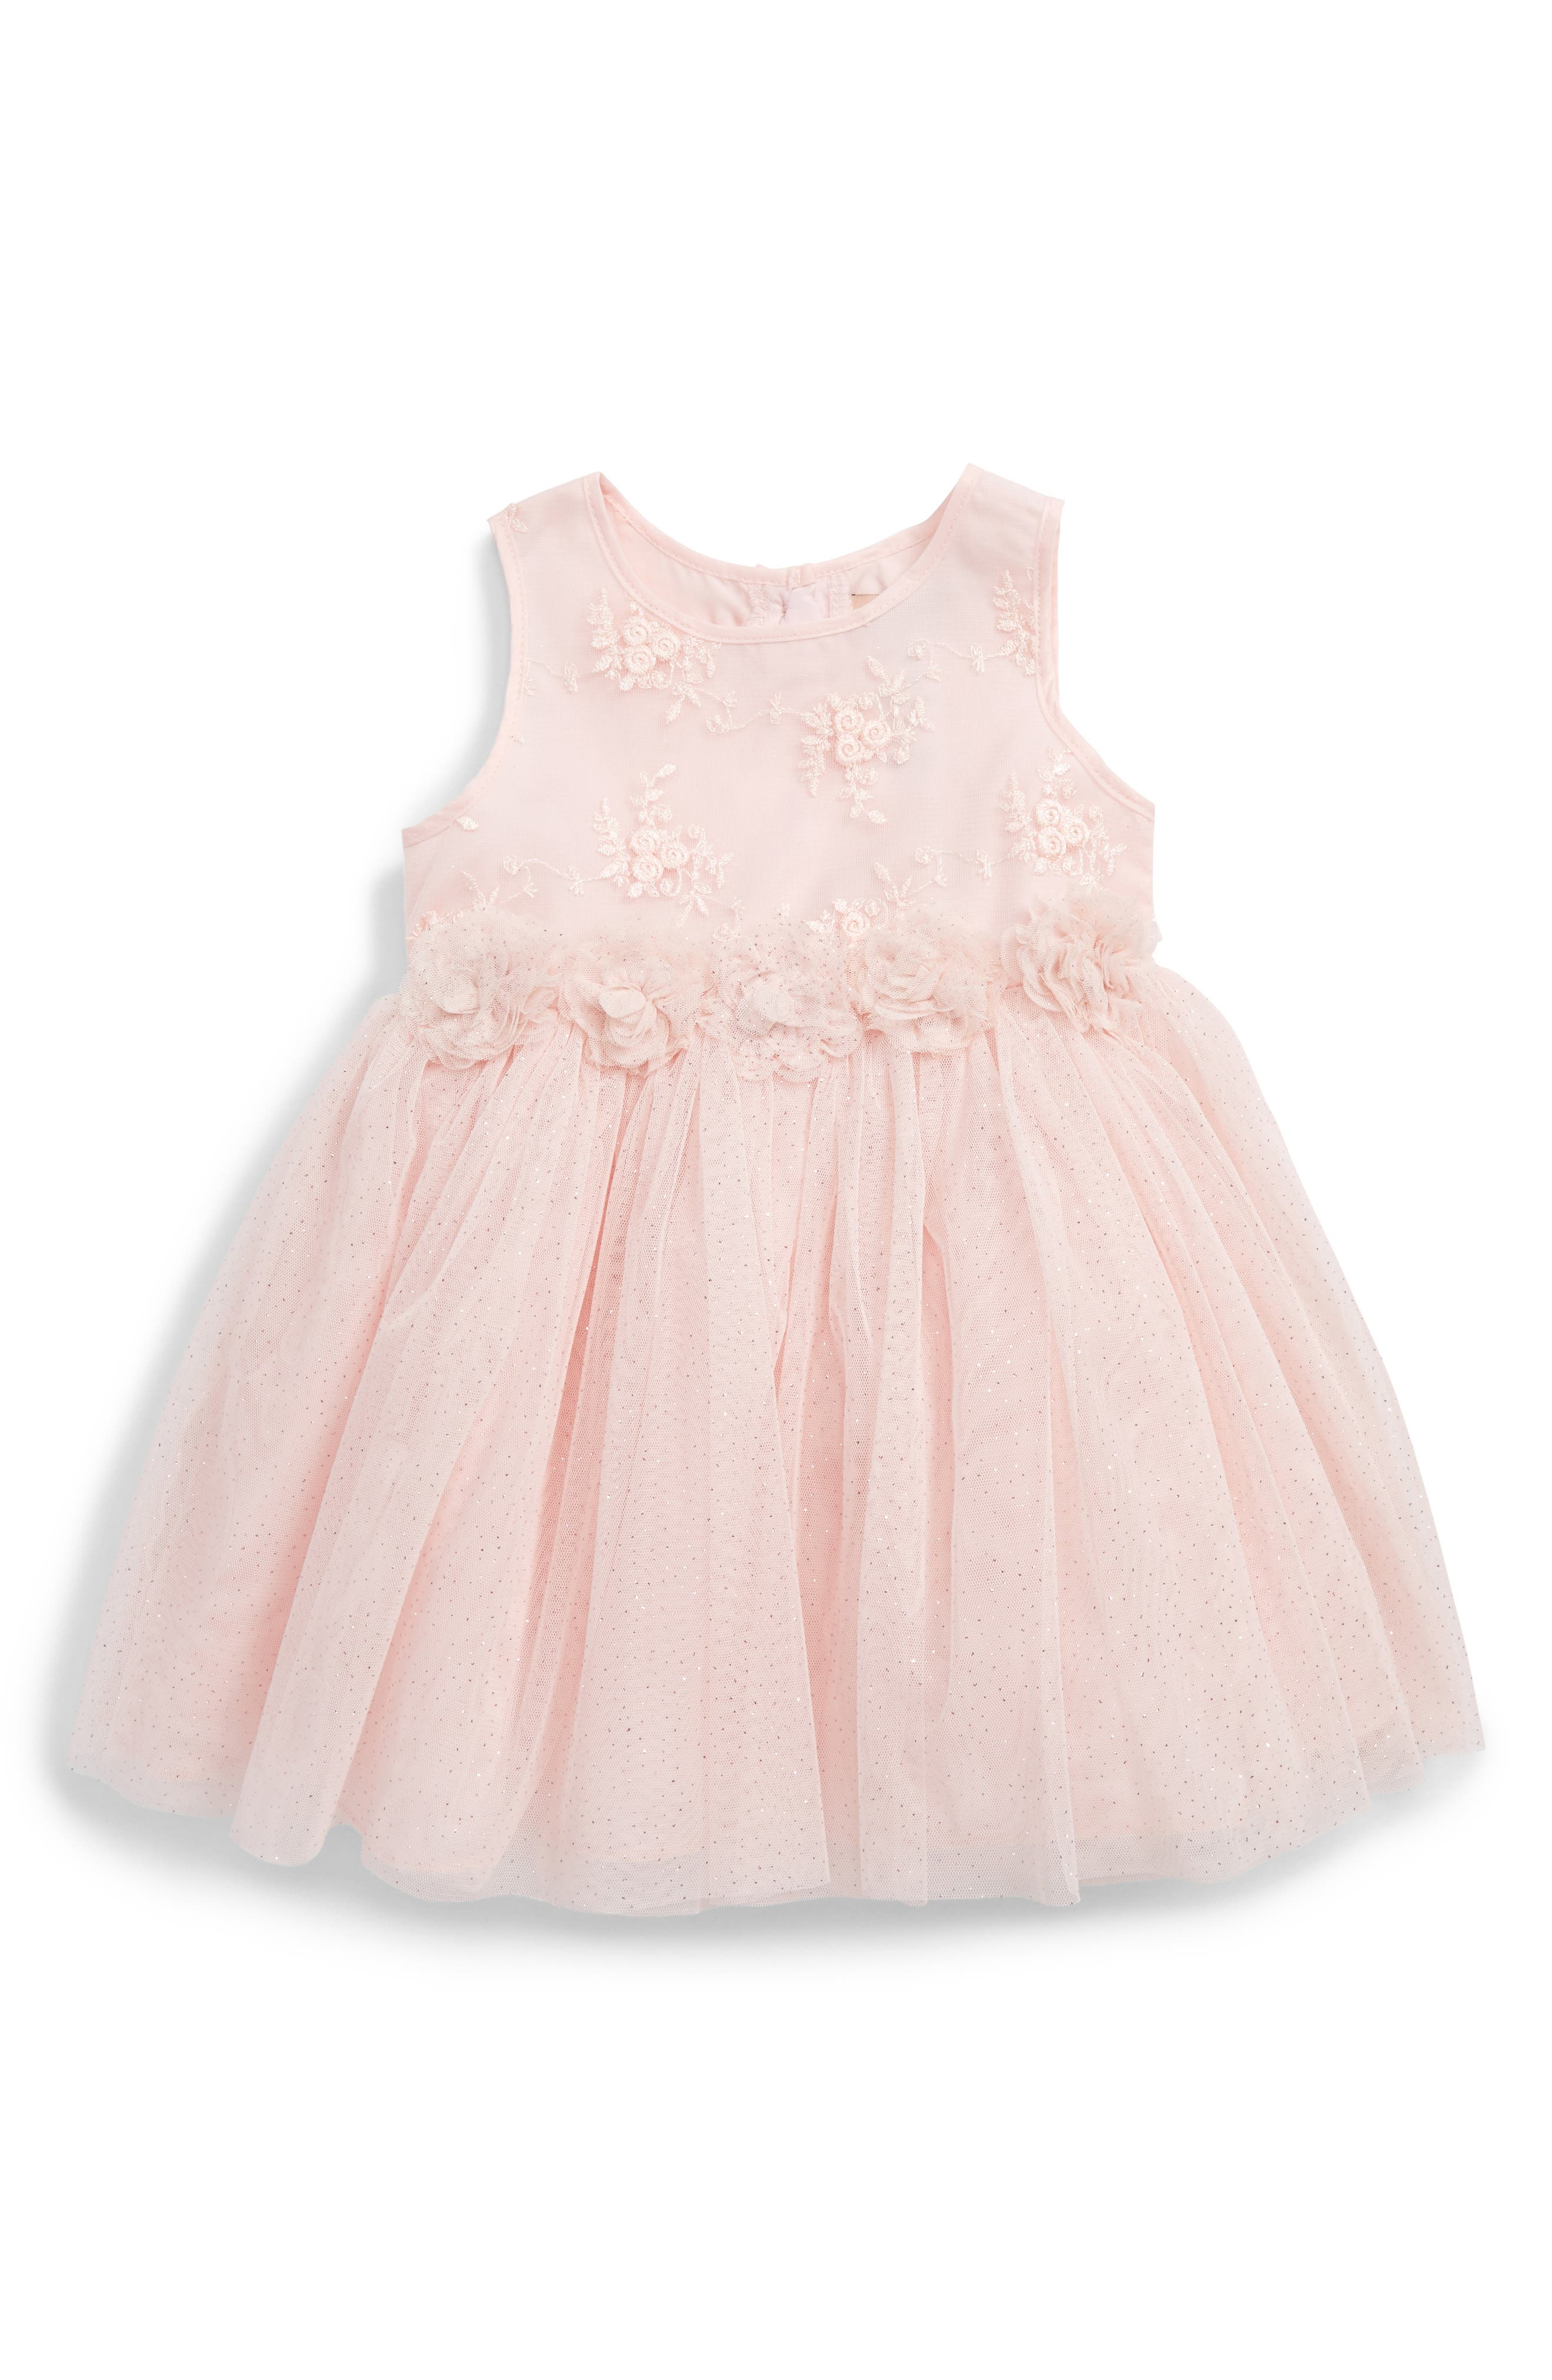 Embroidered Tulle Dress,                         Main,                         color, Pink